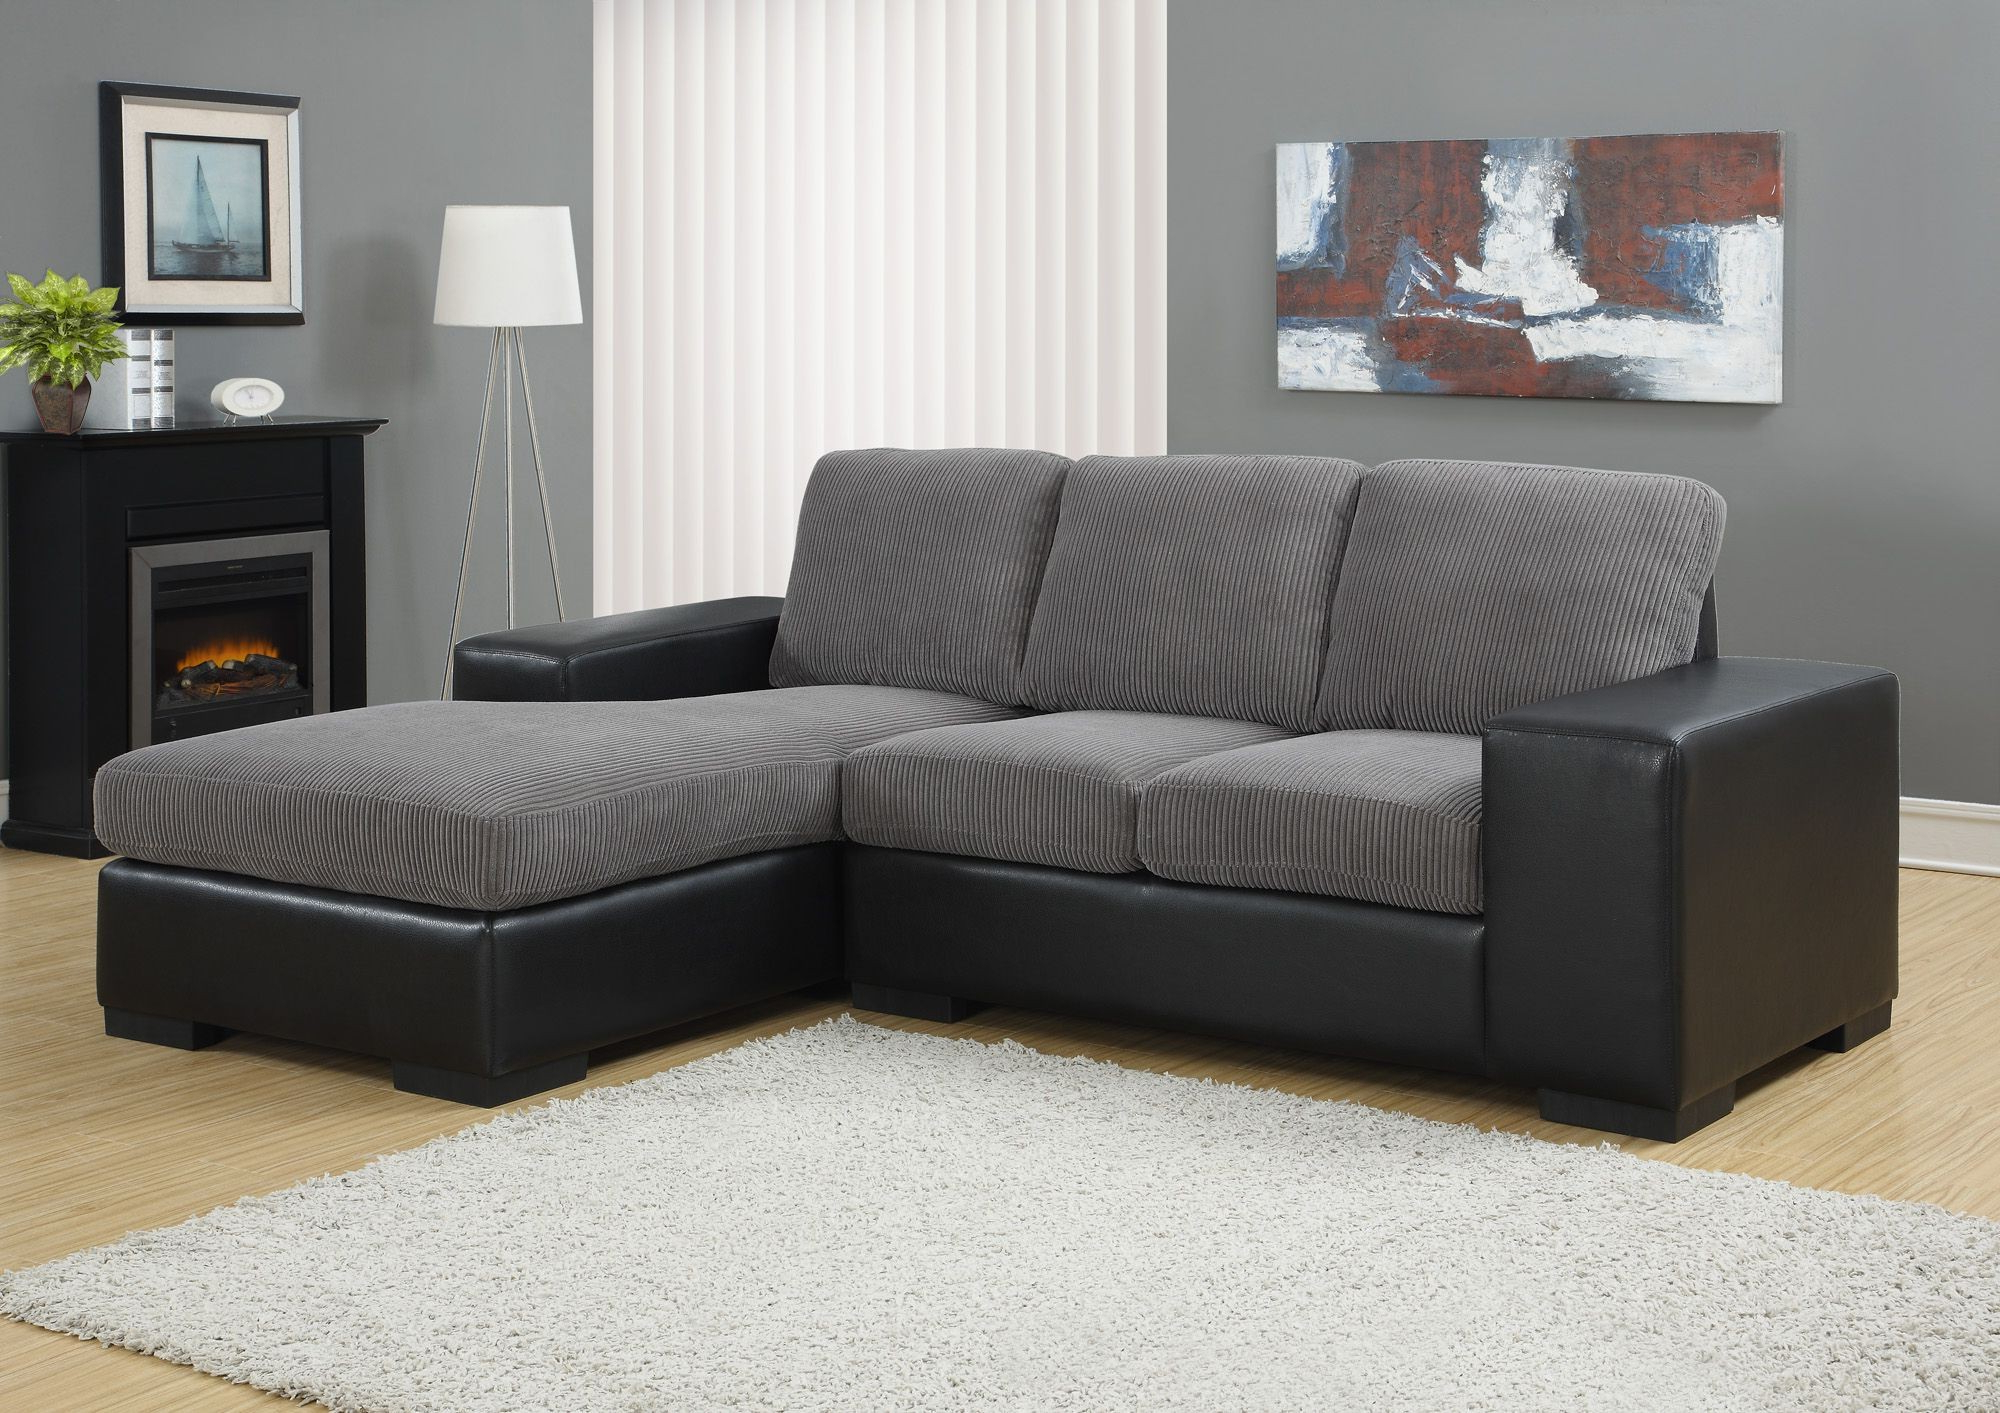 Charcoal Gray Corduroy/Black Sofa Sectional From Monarch With Regard To Popular Gray Sofas (View 2 of 15)